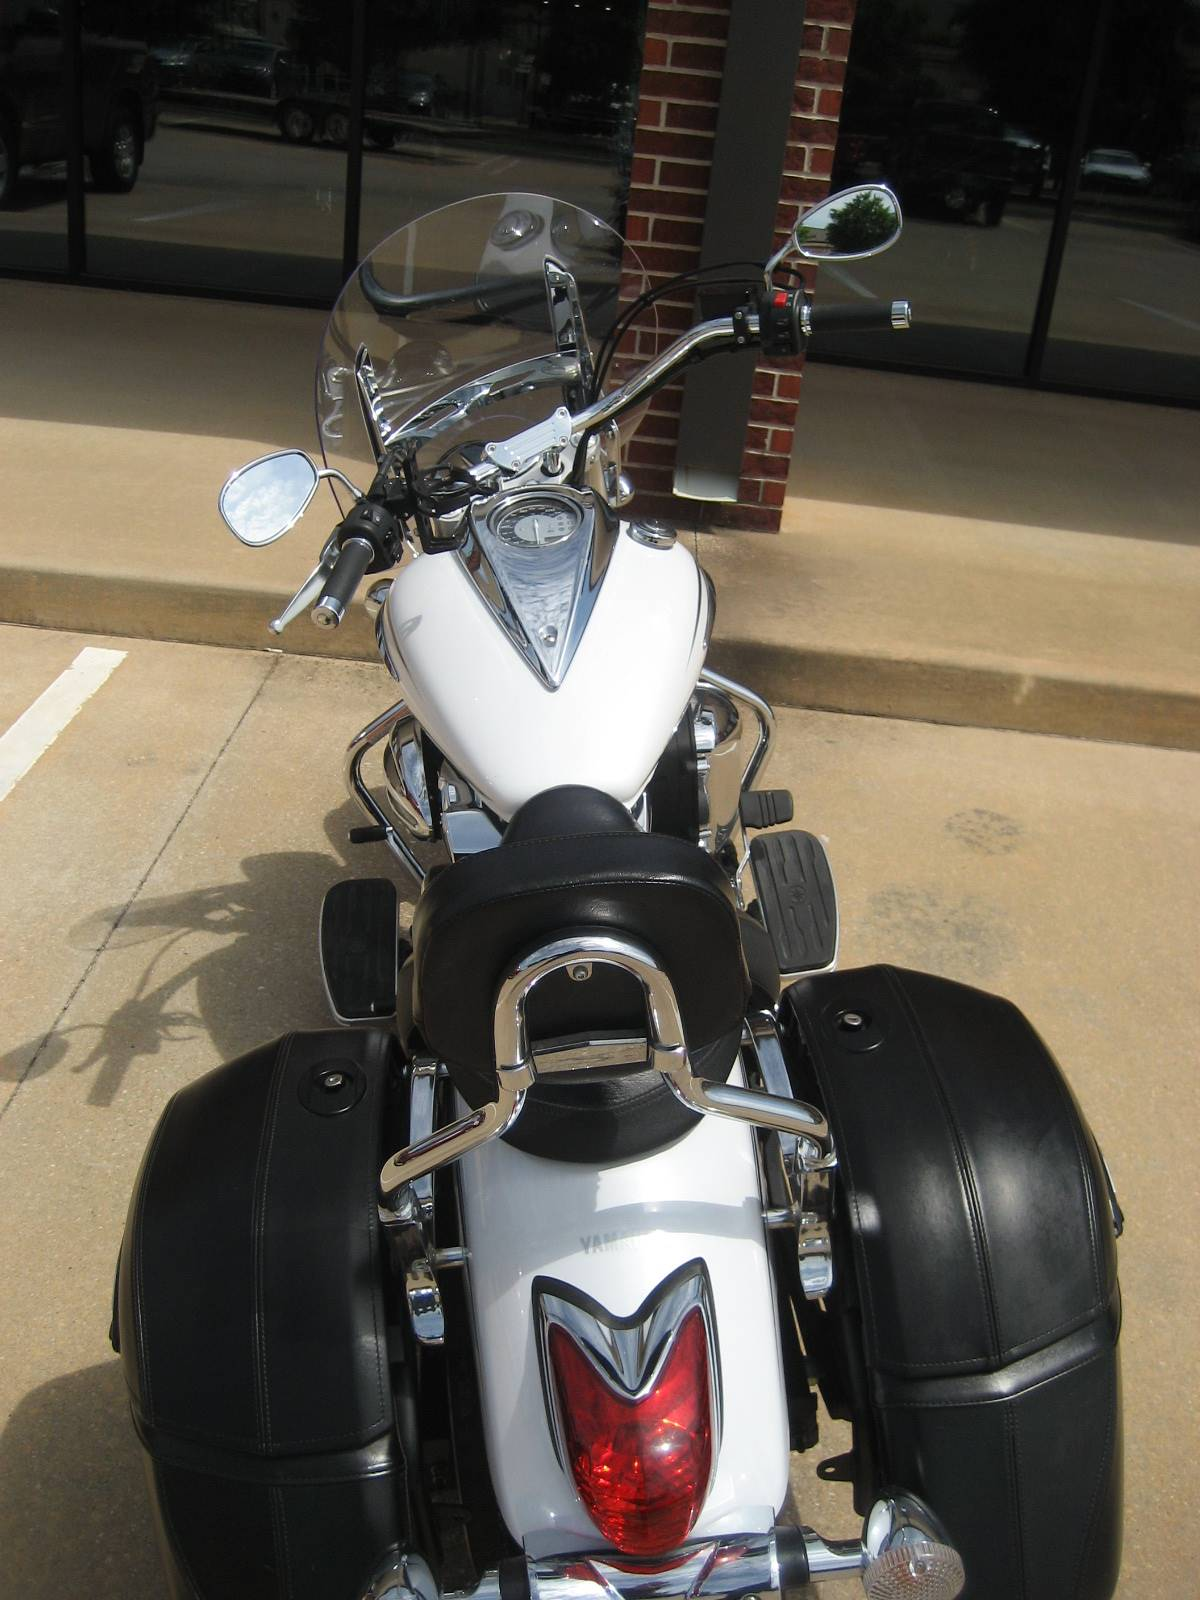 2013 Yamaha V Star 950 in Shawnee, Oklahoma - Photo 2